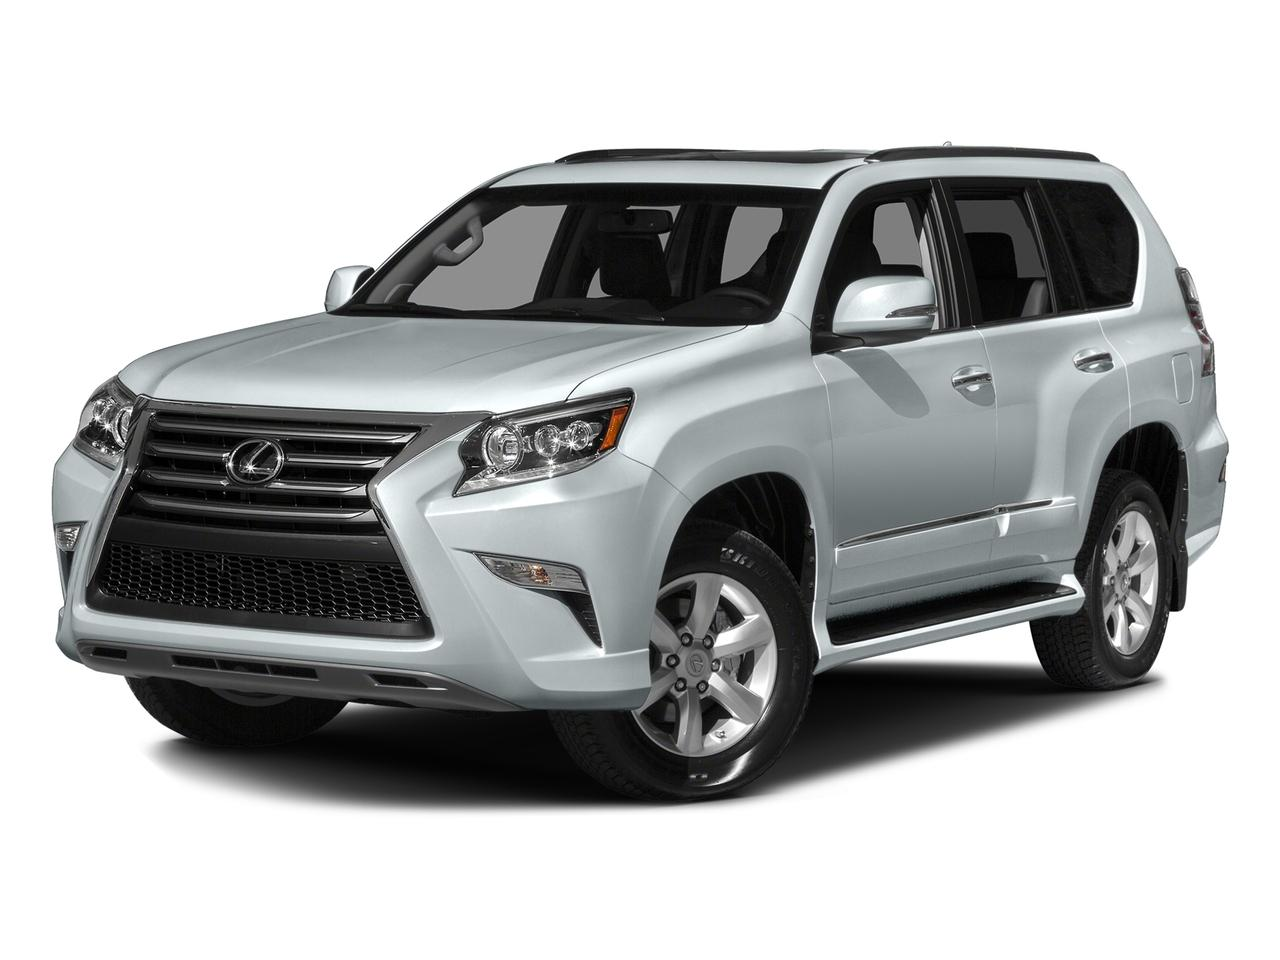 2016 Lexus GX 460 Vehicle Photo in Concord, NC 28027